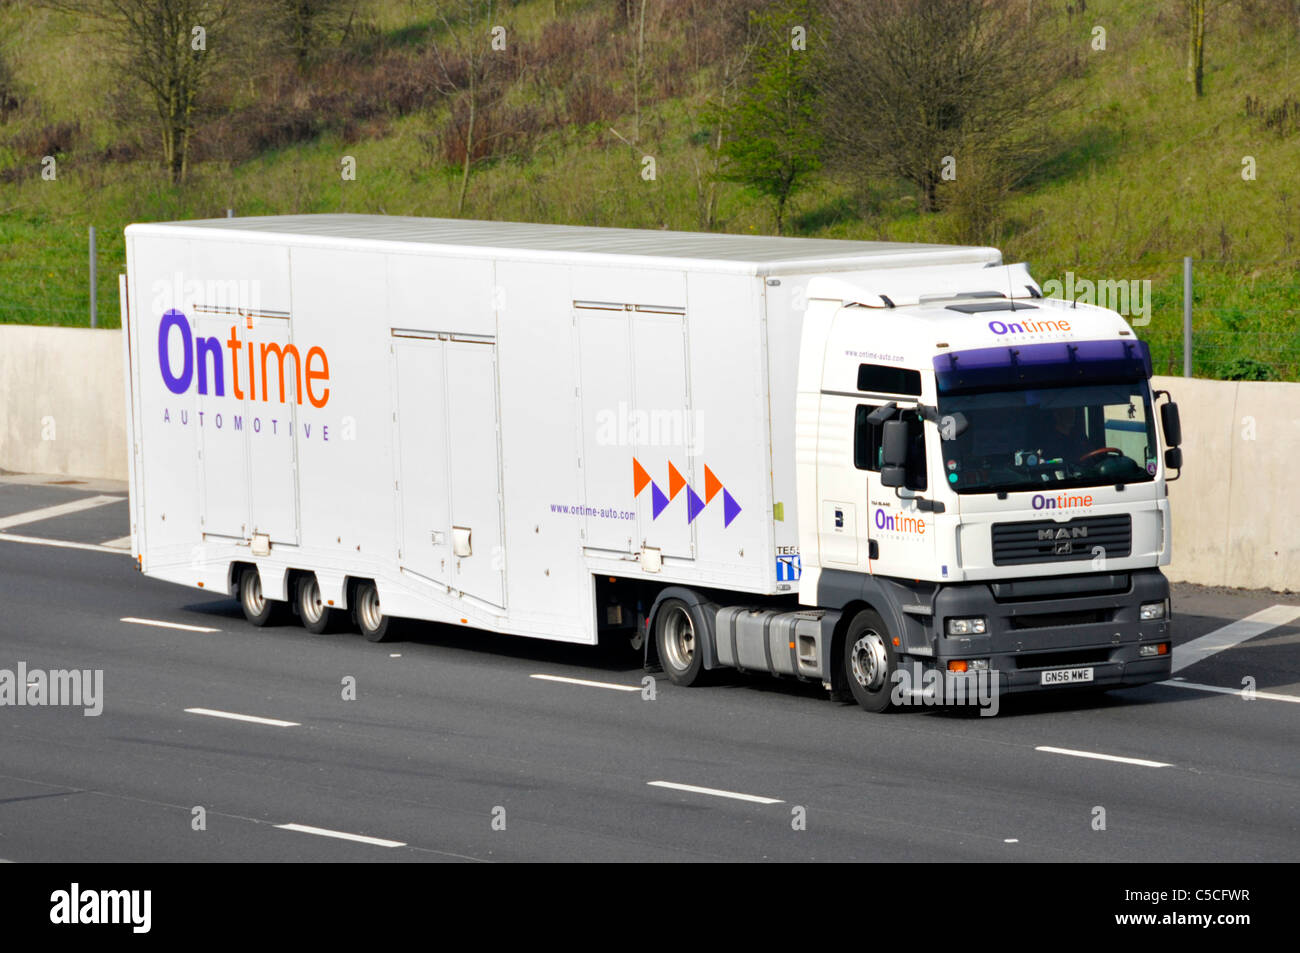 Front & side view of Ontime Automotive enclosed car delivery transport business hgv lorry truck & trailer - Stock Image